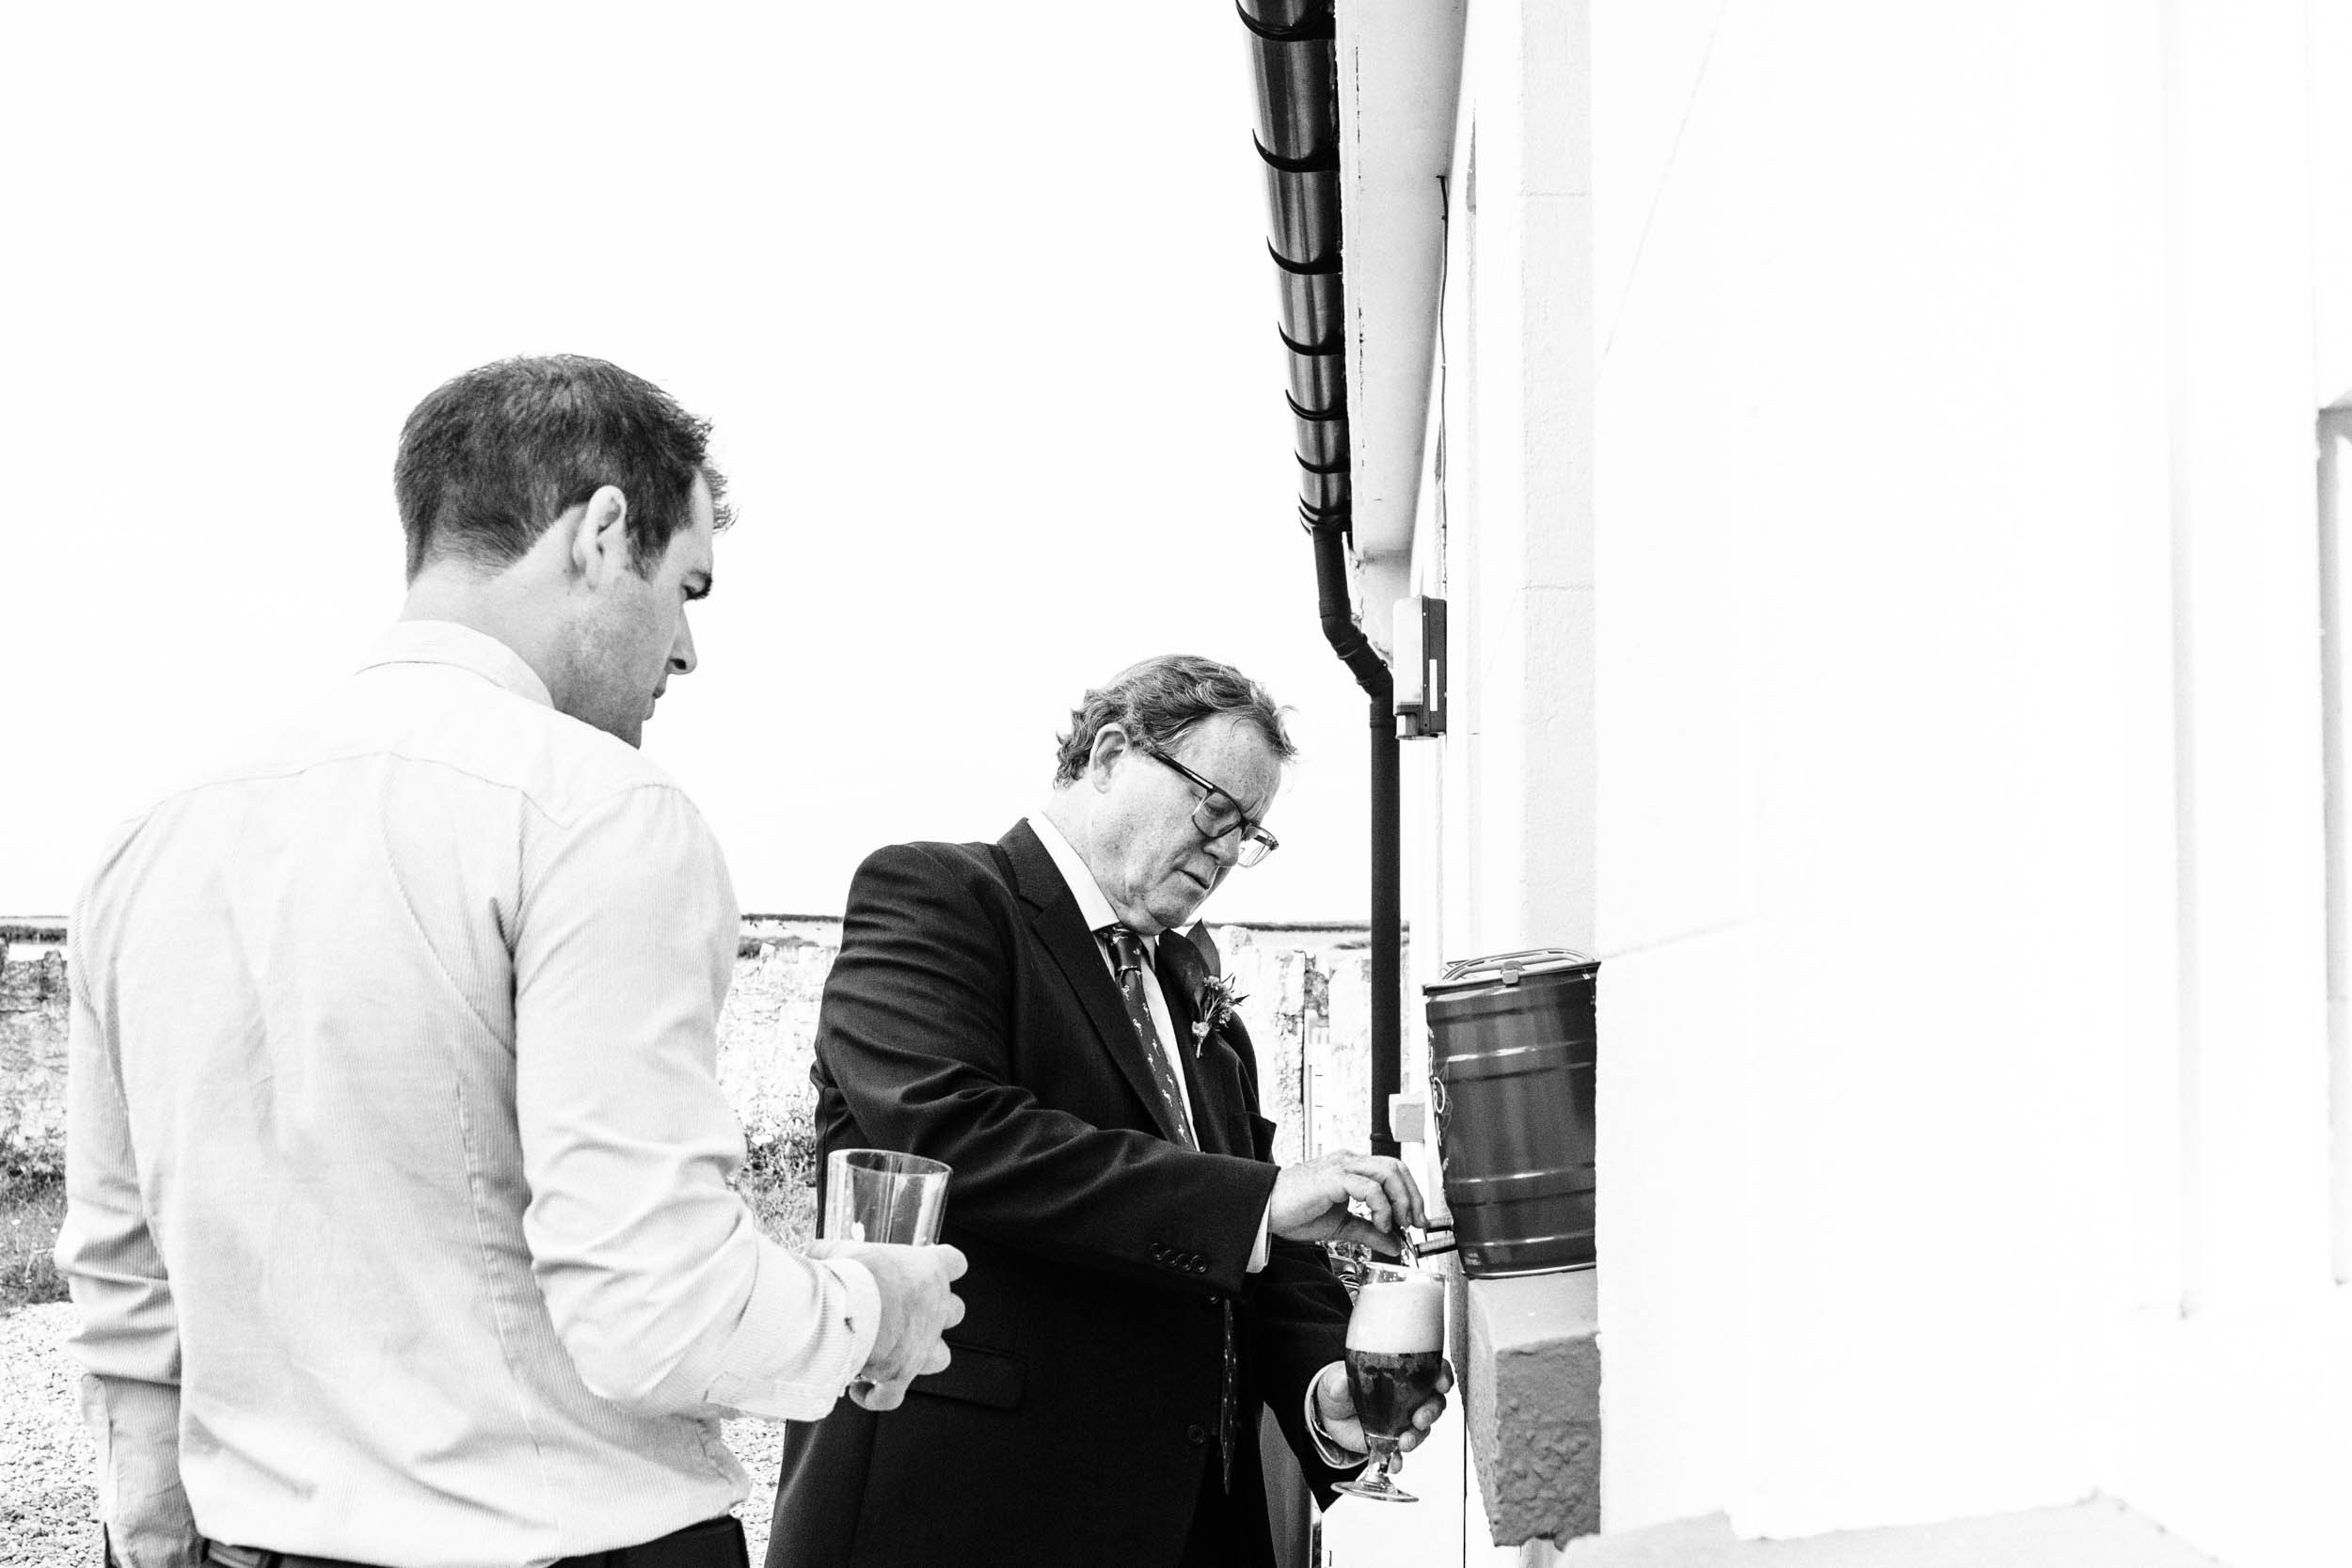 Alex_Sedgmond_Photography-MonkNashLighthouse-WeddingPhotography-Penny&Mike-173.jpg